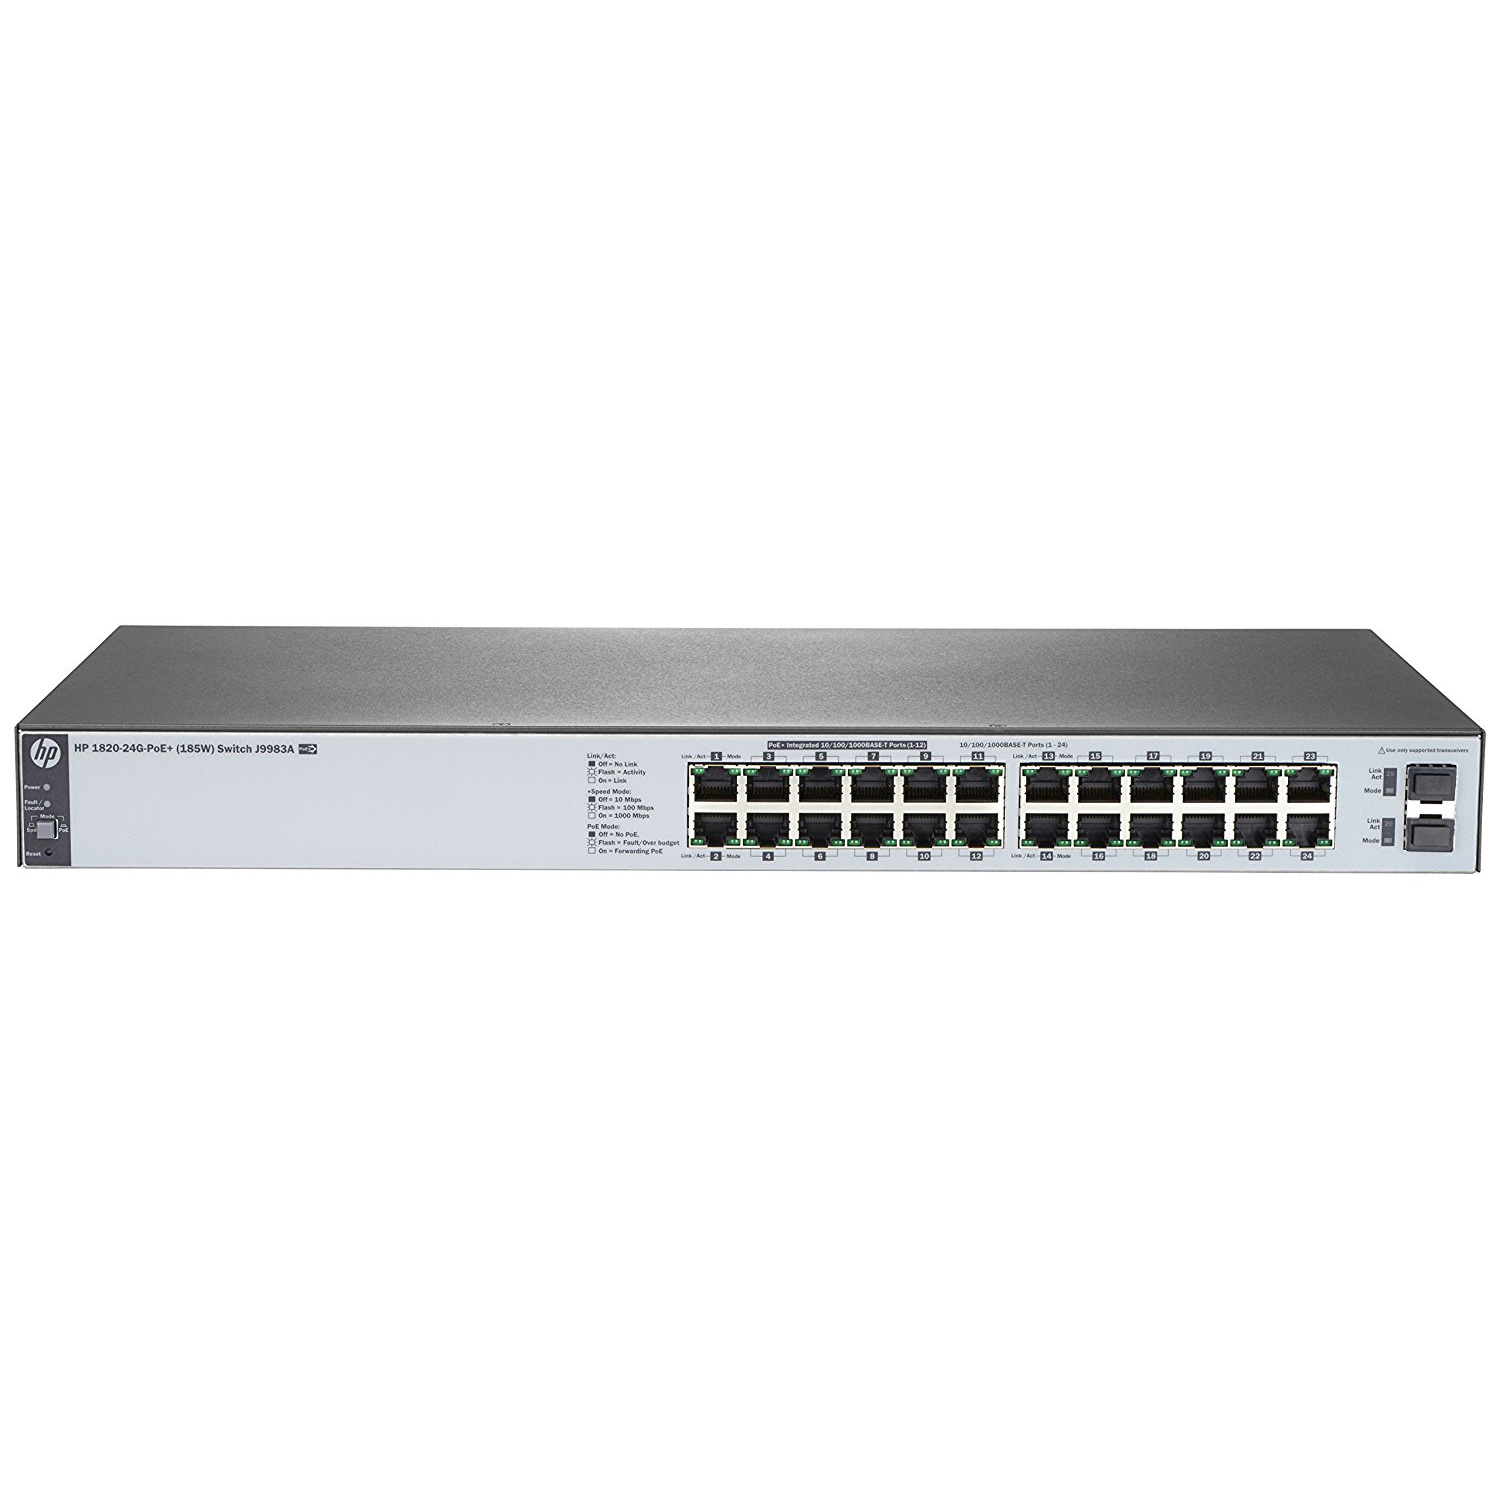 Thiết bị chuyển mạch HPE J9983A OfficeConnect 1820 24G PoE+ (185W) Switch